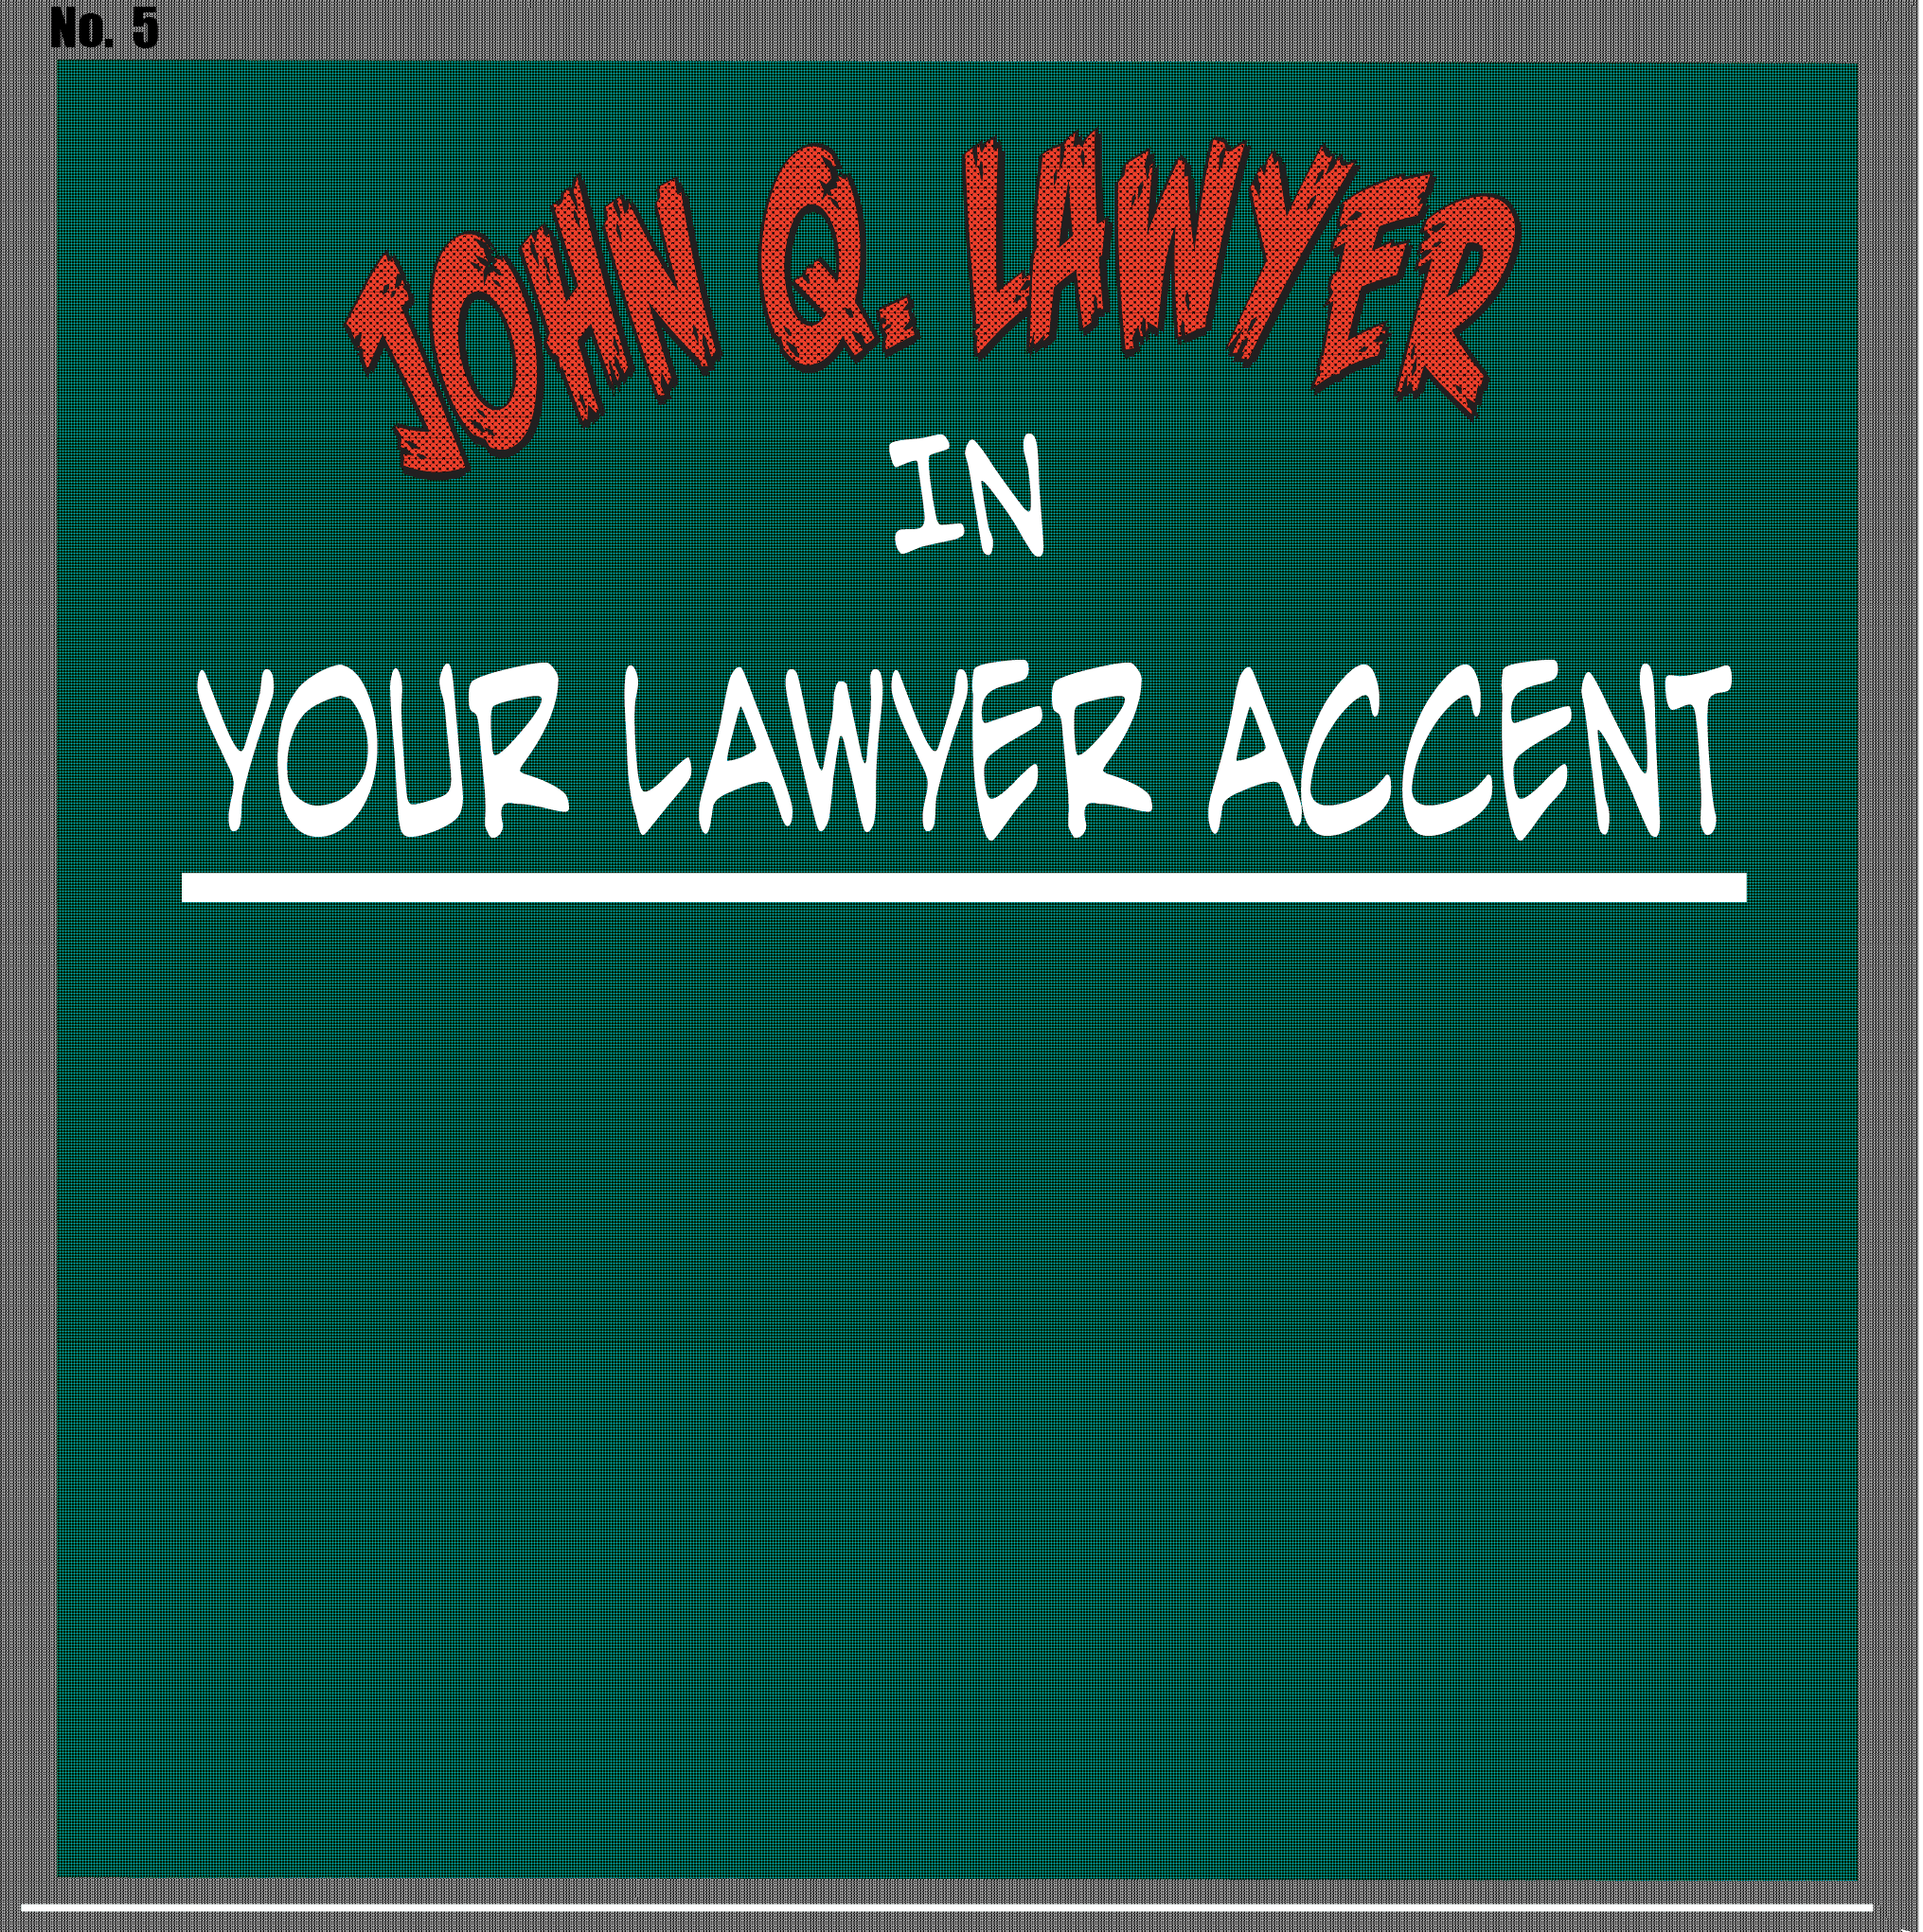 Your Lawyer Accent